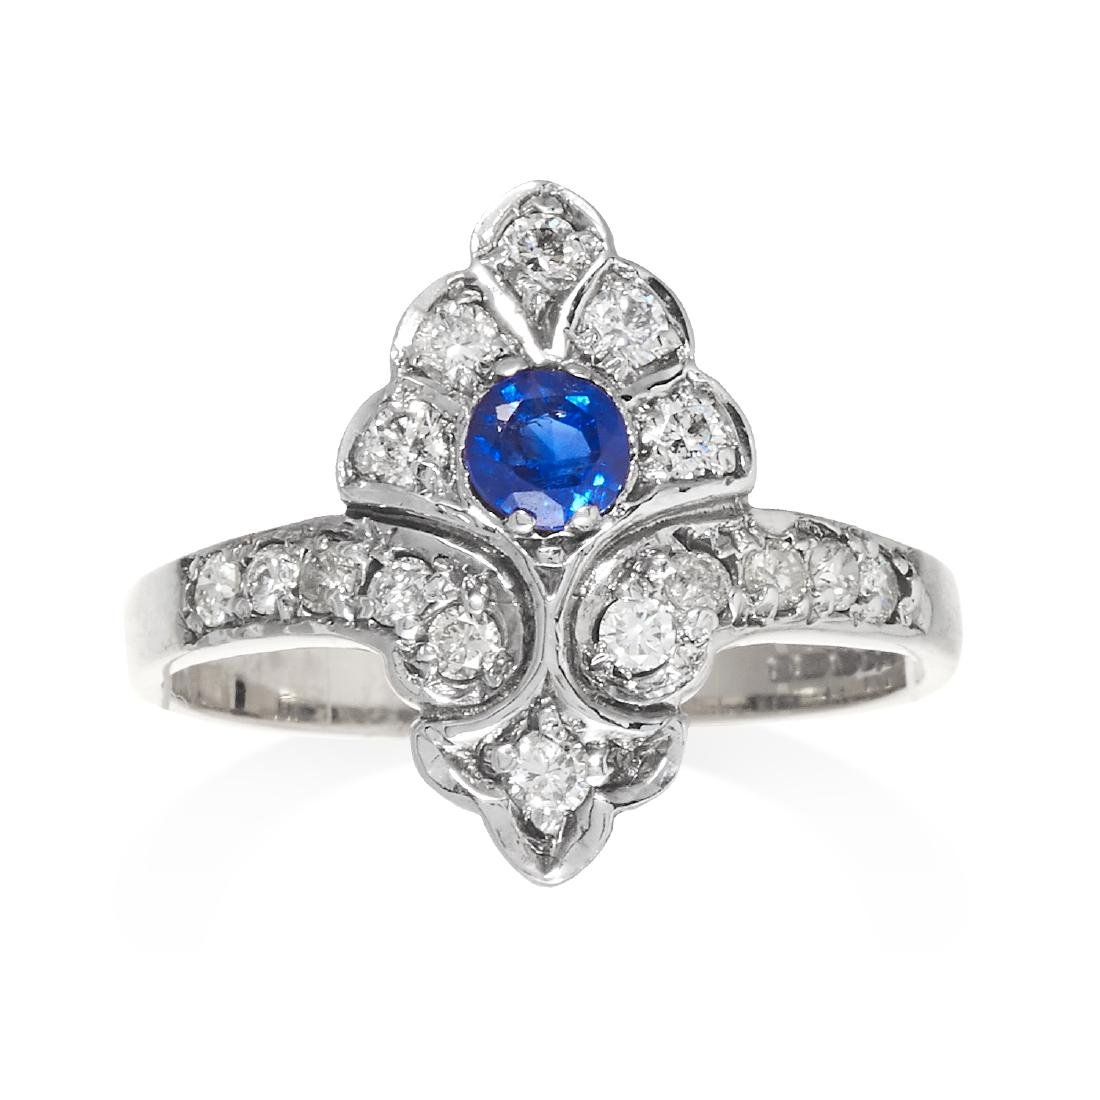 A SAPPHIRE AND DIAMOND DRESS RING in yellow and white